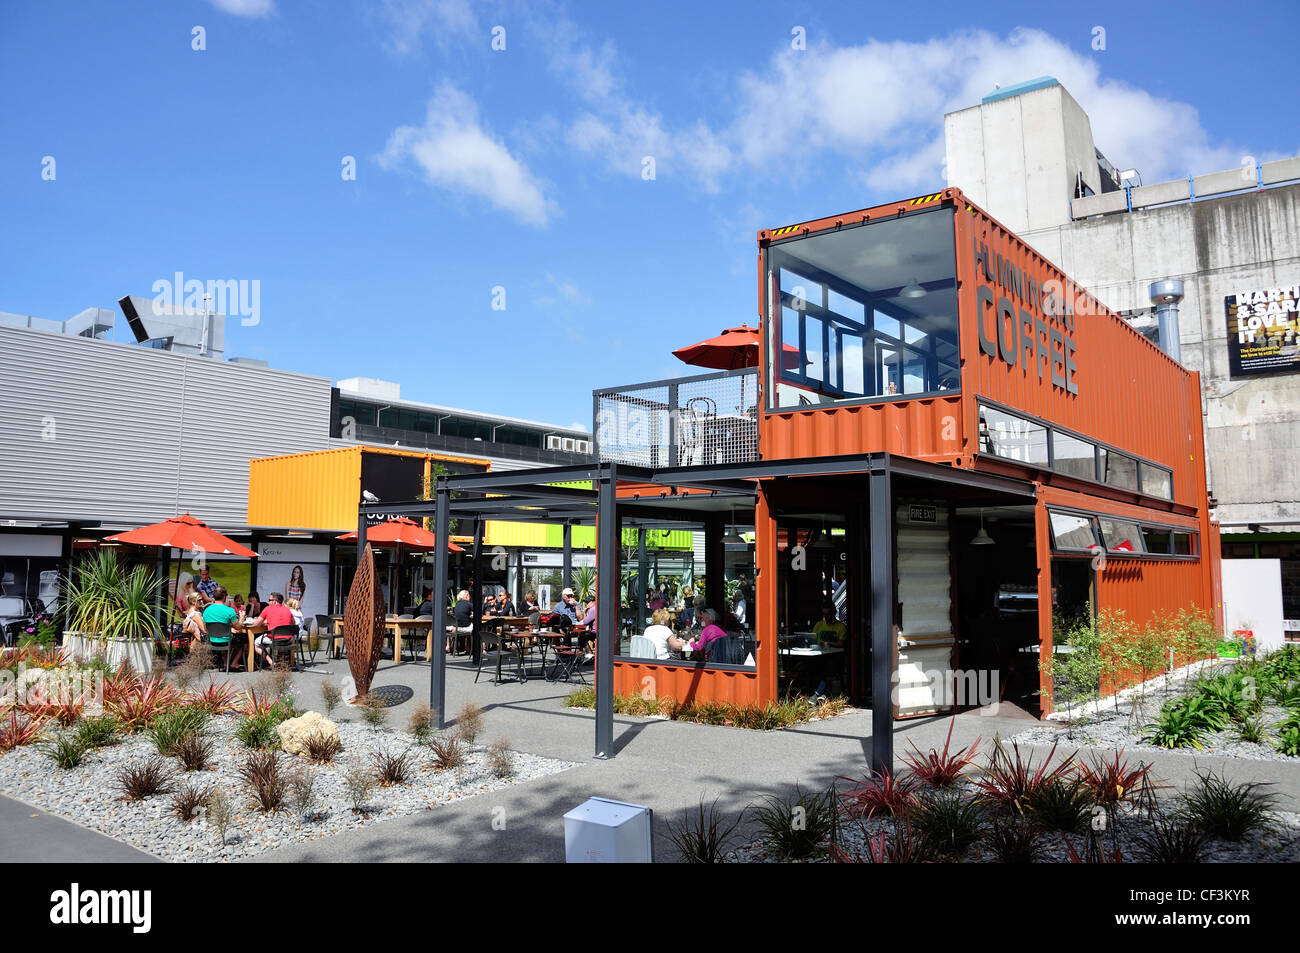 Re:start Container City construit après les tremblements de terre, Cashel Mall, CBD, Christchurch, Canterbury, Photo Stock